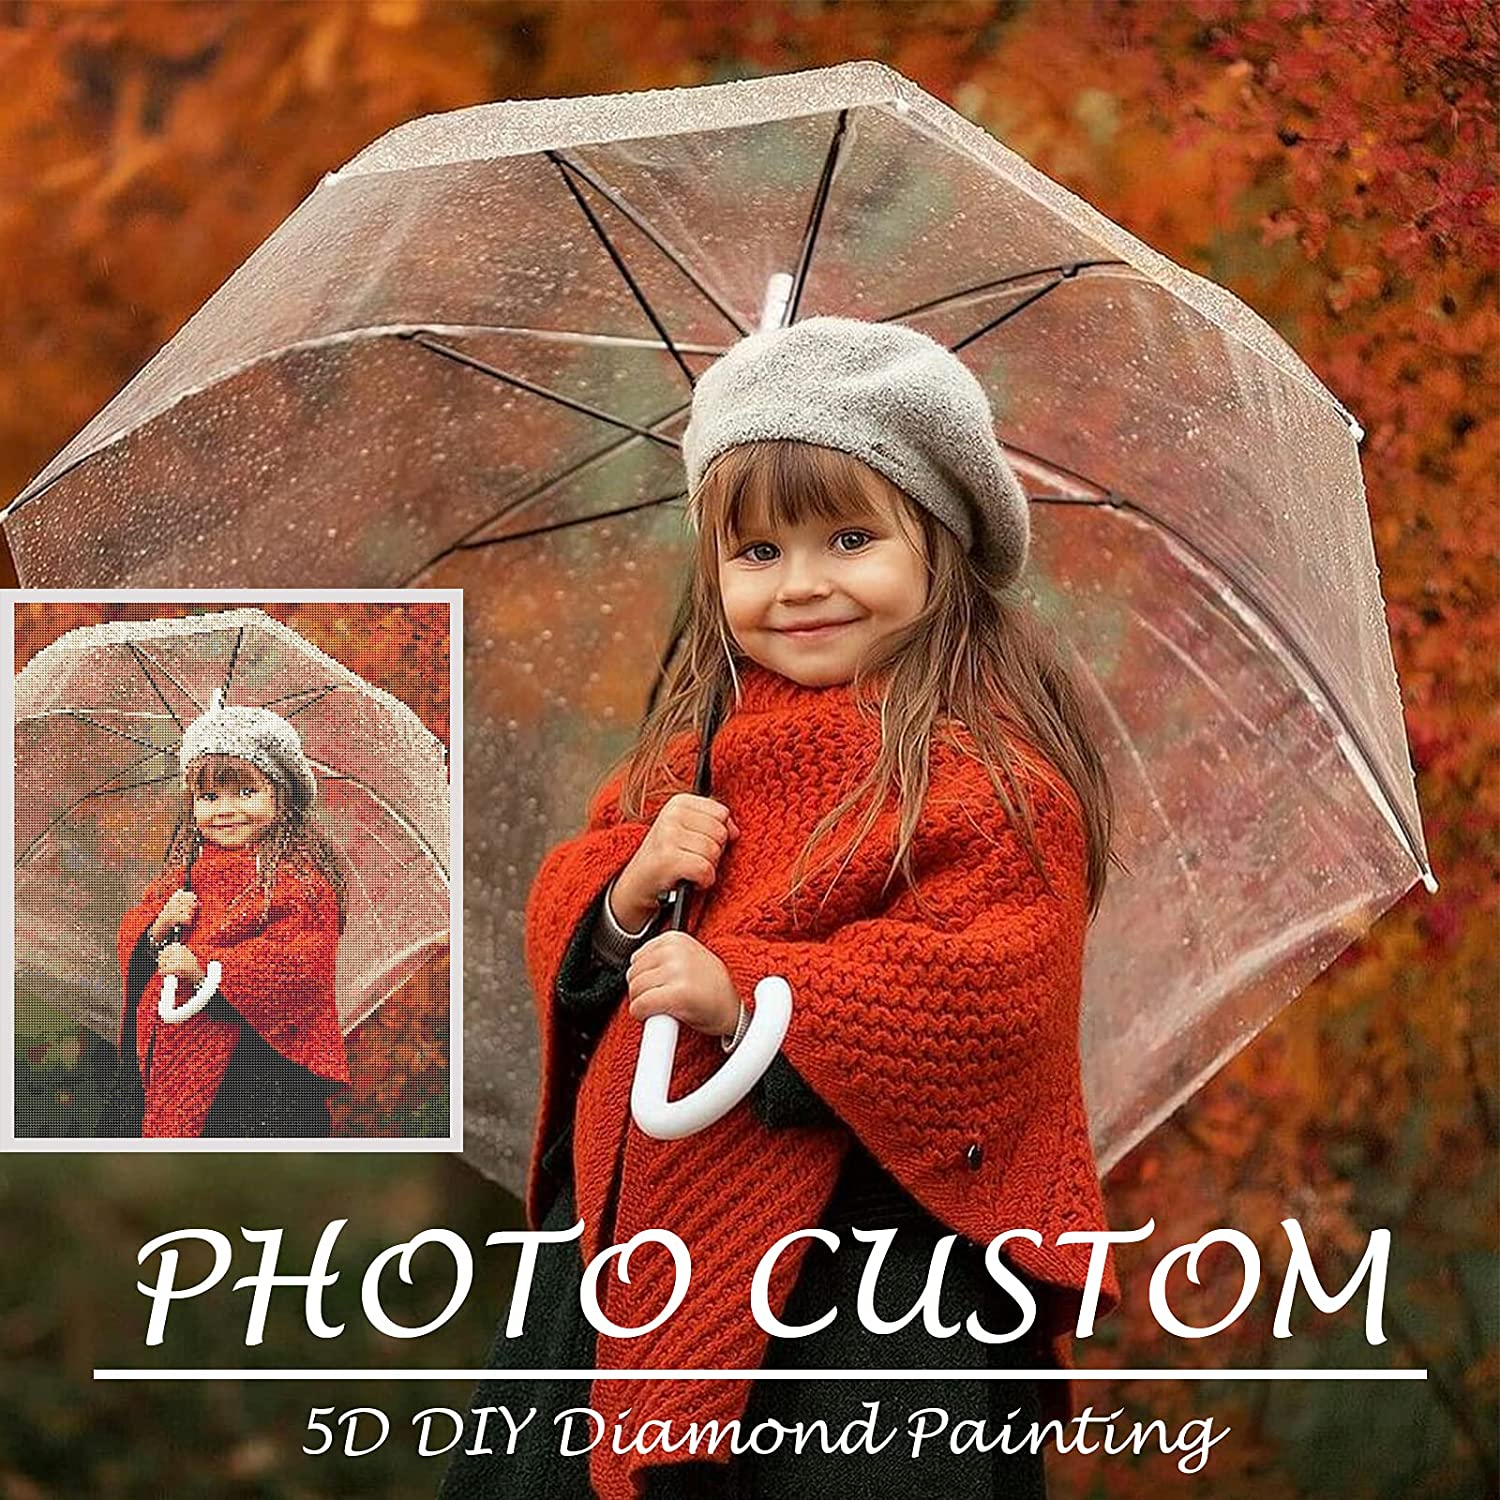 Custom Diamond Painting Kits 100% quality warranty Full Drill Genuine for Adults,Personalize